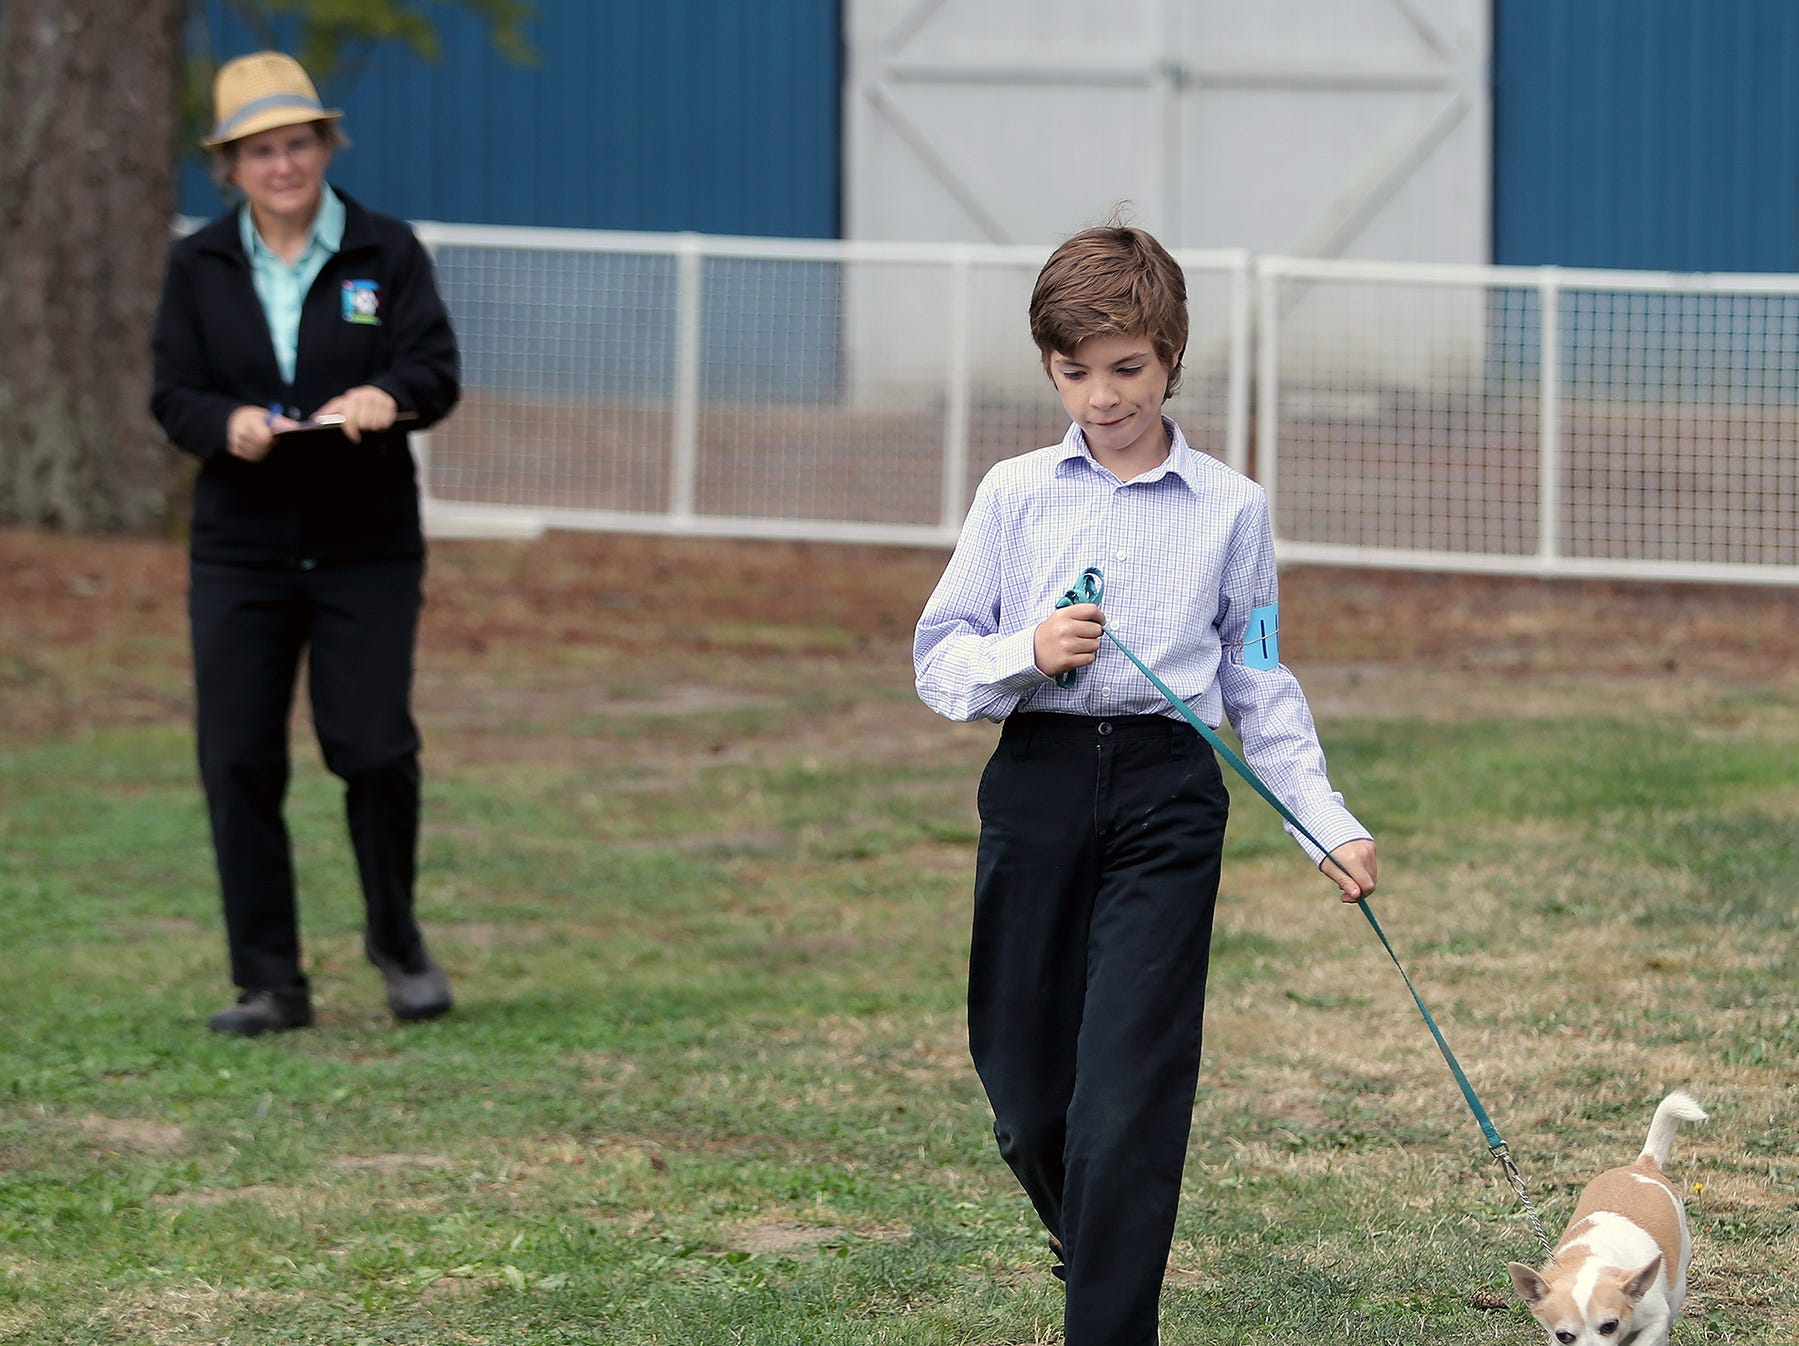 Michael Tabor, 10, of Bremerton takes his dog Dexter out for judging in the beginner obedience class at the Kitsap County Fair & Stampede on Thursday, August 23, 2018, at the Kitsap County Fairgrounds.The fair goes from 10 a.m. until 10 p.m..It was his first time showing at the fair and had already picked up one blue ribbon.